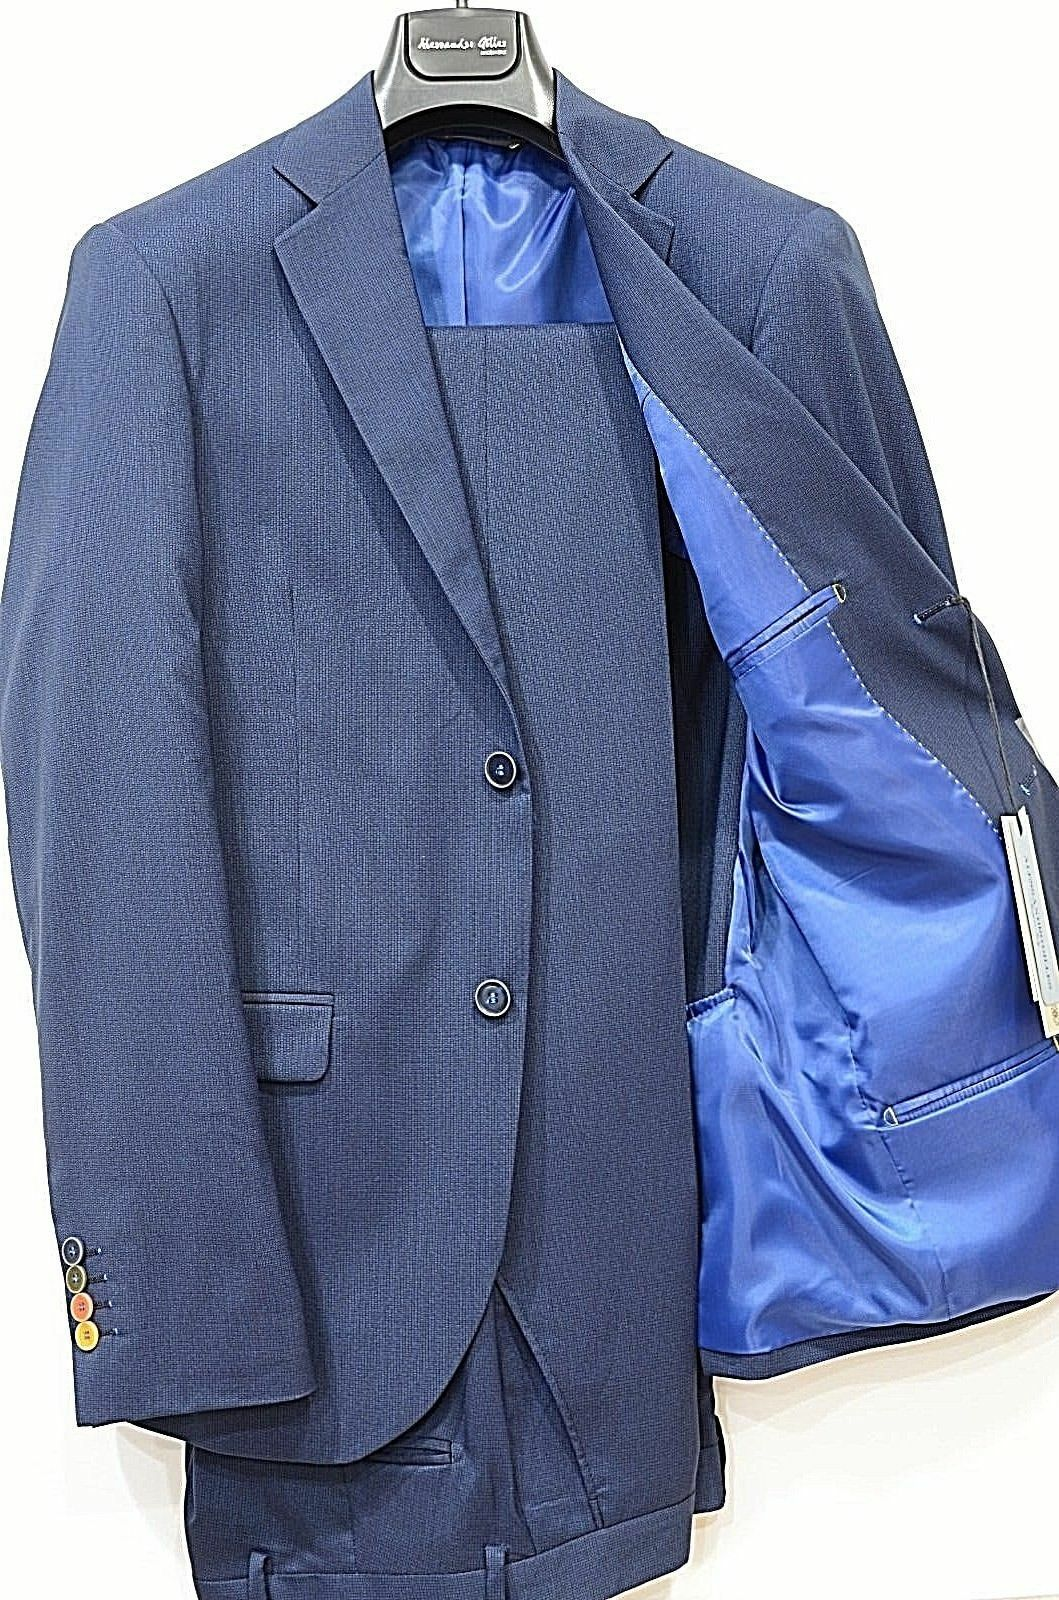 ALESSANDRO GILLES ABITO men SLIM FIT MADE IN ITALY ART. A22C 0150 blue MICROFANT